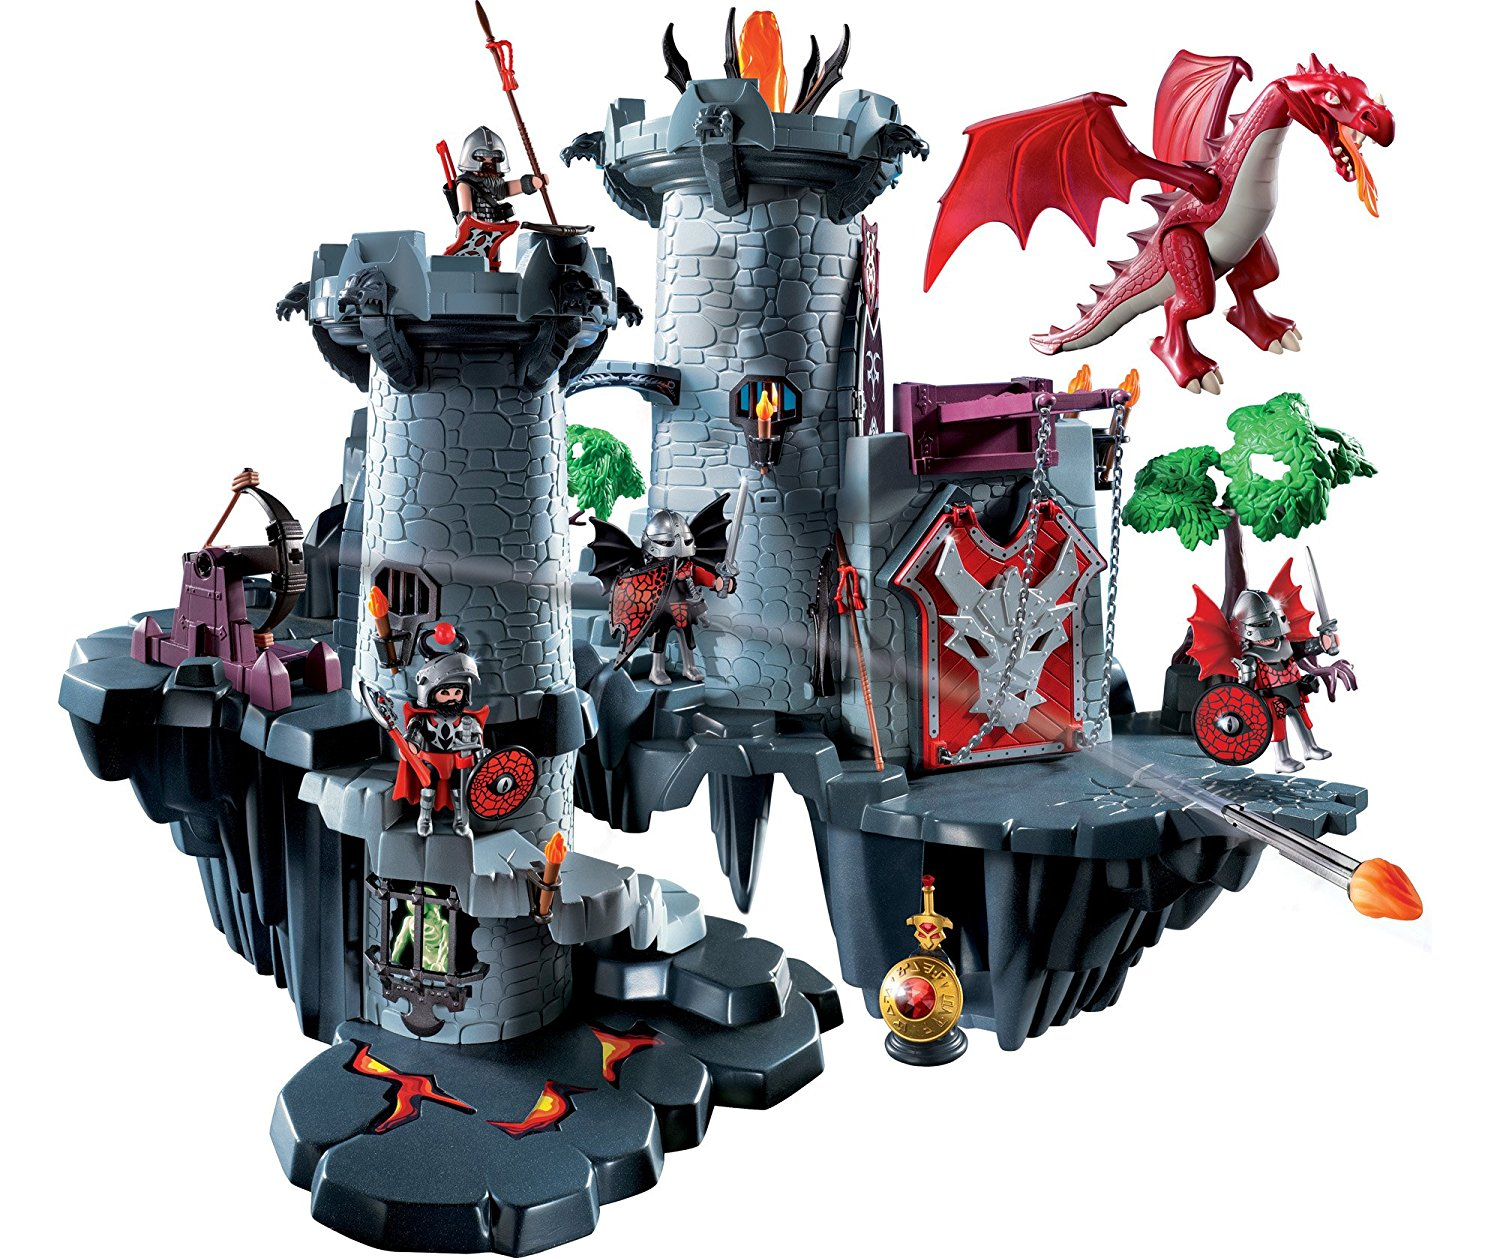 Citadelle du dragon rouge 4835 playmobil ch teau fort for Plan chateau fort playmobil